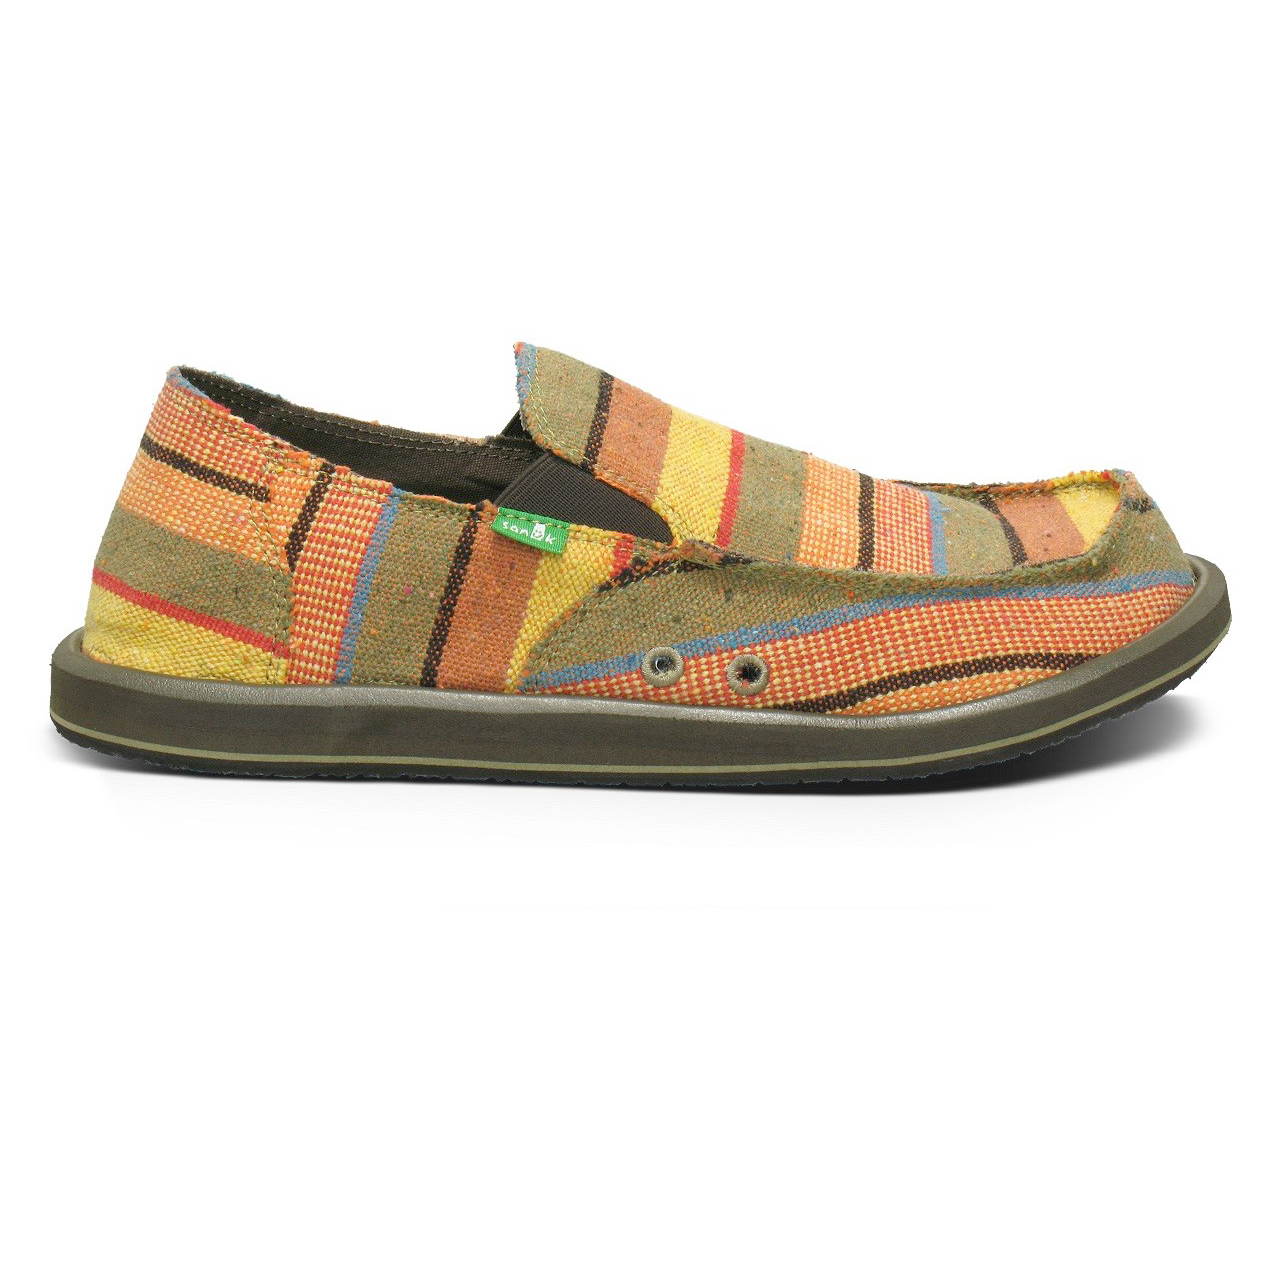 Sanuk-Donny-Sandals-Sidewalk-Surfers-New-in-Various-Colours-and-Sizes